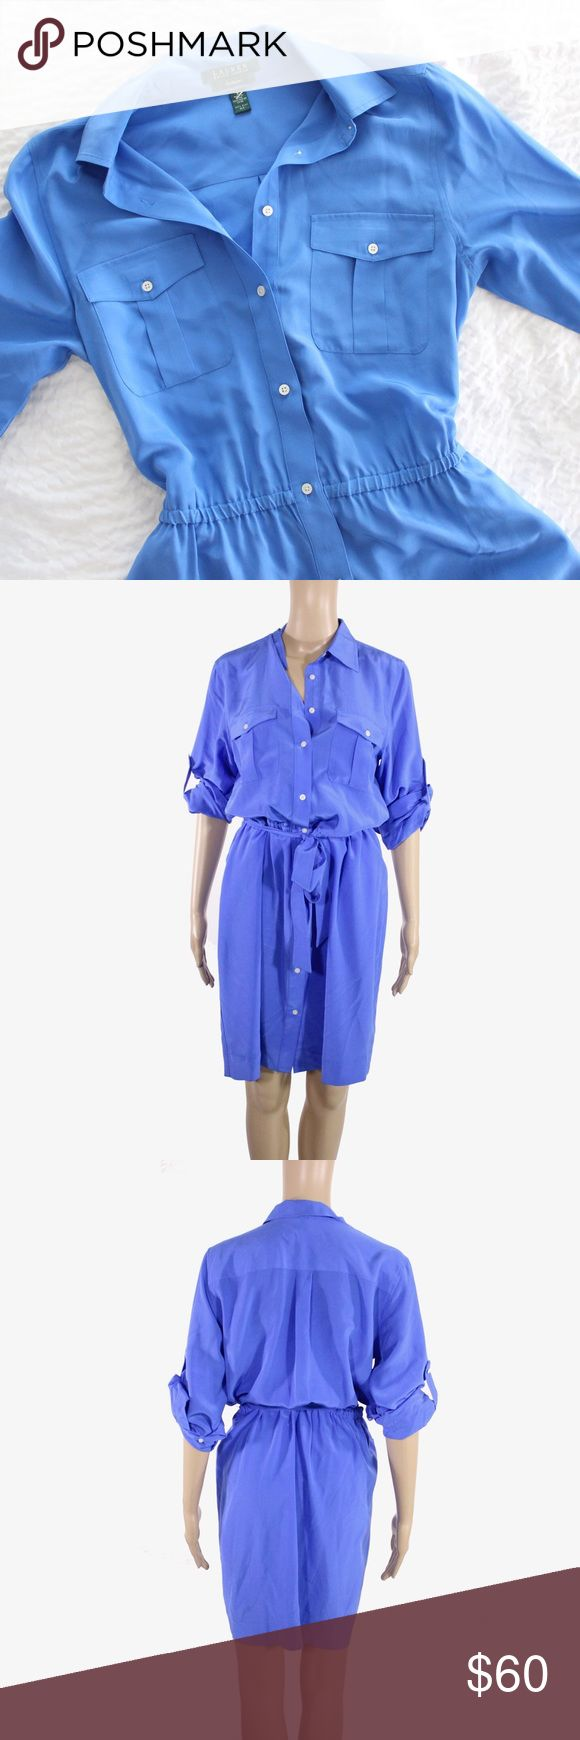 Ralph Lauren Silk Shirt Dress Roll Tab Sleeves Tie Lauren Ralph Lauren blue silk shirt dress with button down closure and roll tab sleeves. Elastic waist with a detachable sash belt.  Fits true to size.  Shown on size 4/6 mannequin.  In gently used condition, no flaws.  Measurements available upon request.  All orders shipped same or next business day! Lauren Ralph Lauren Dresses Long Sleeve